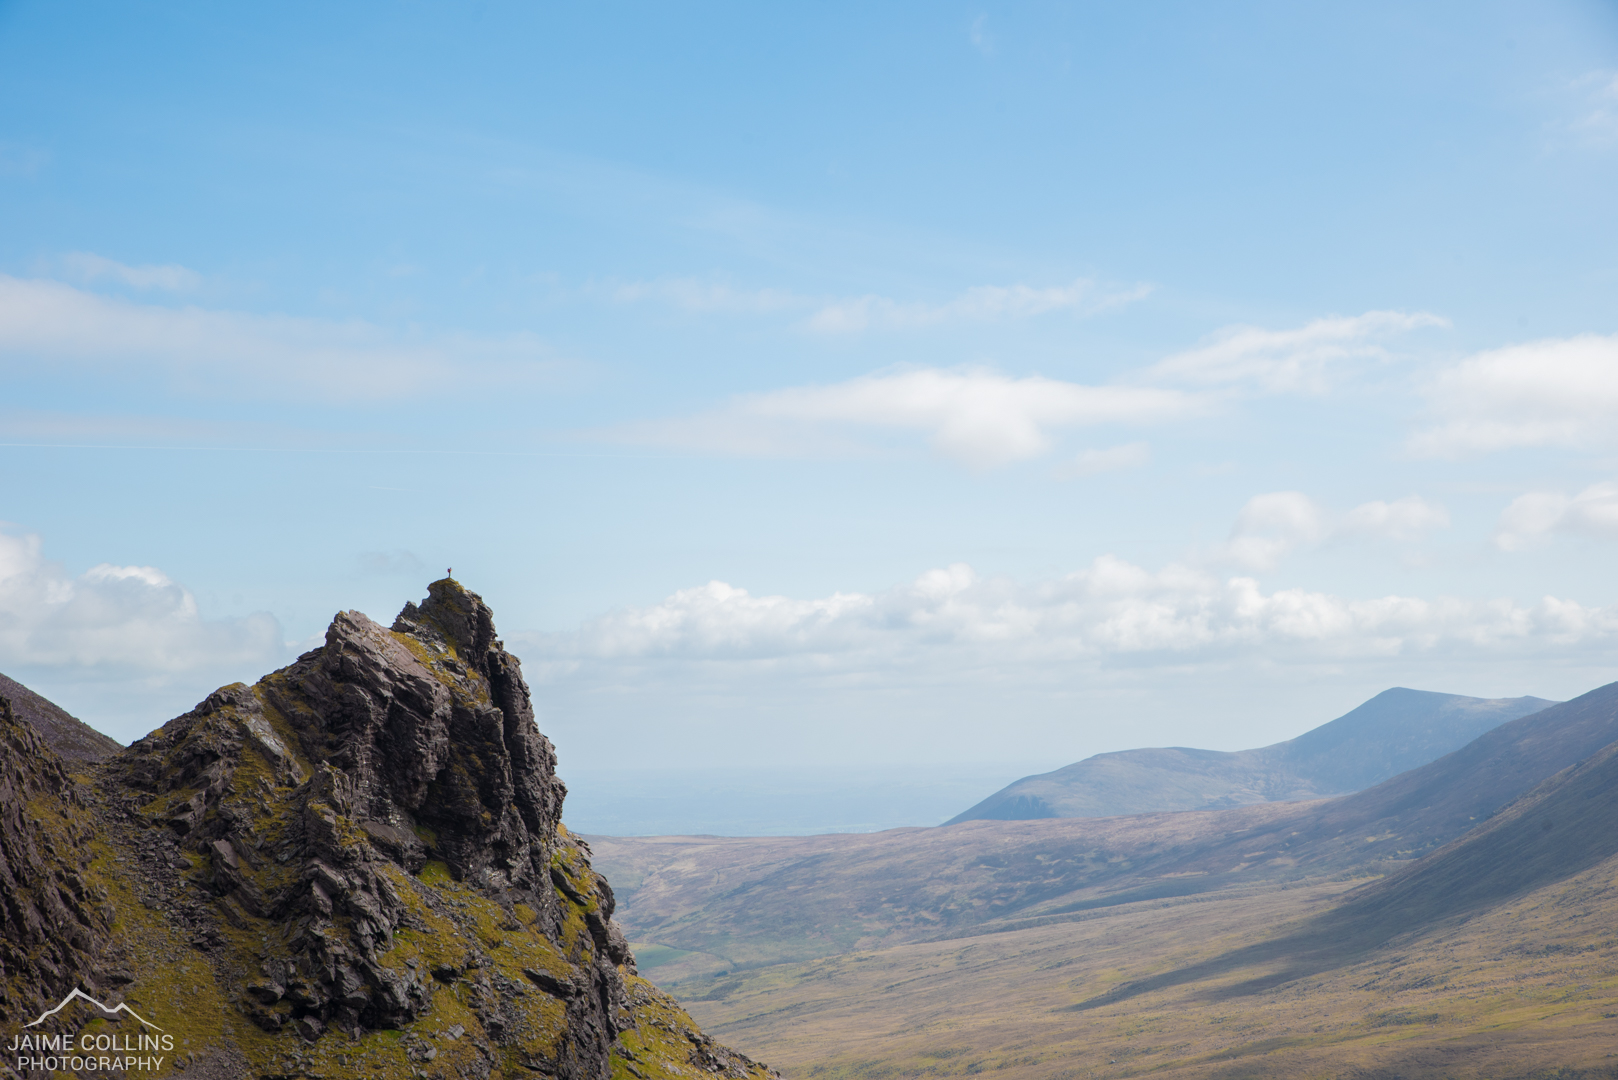 A lone hiker standing on top of a rock outcrop